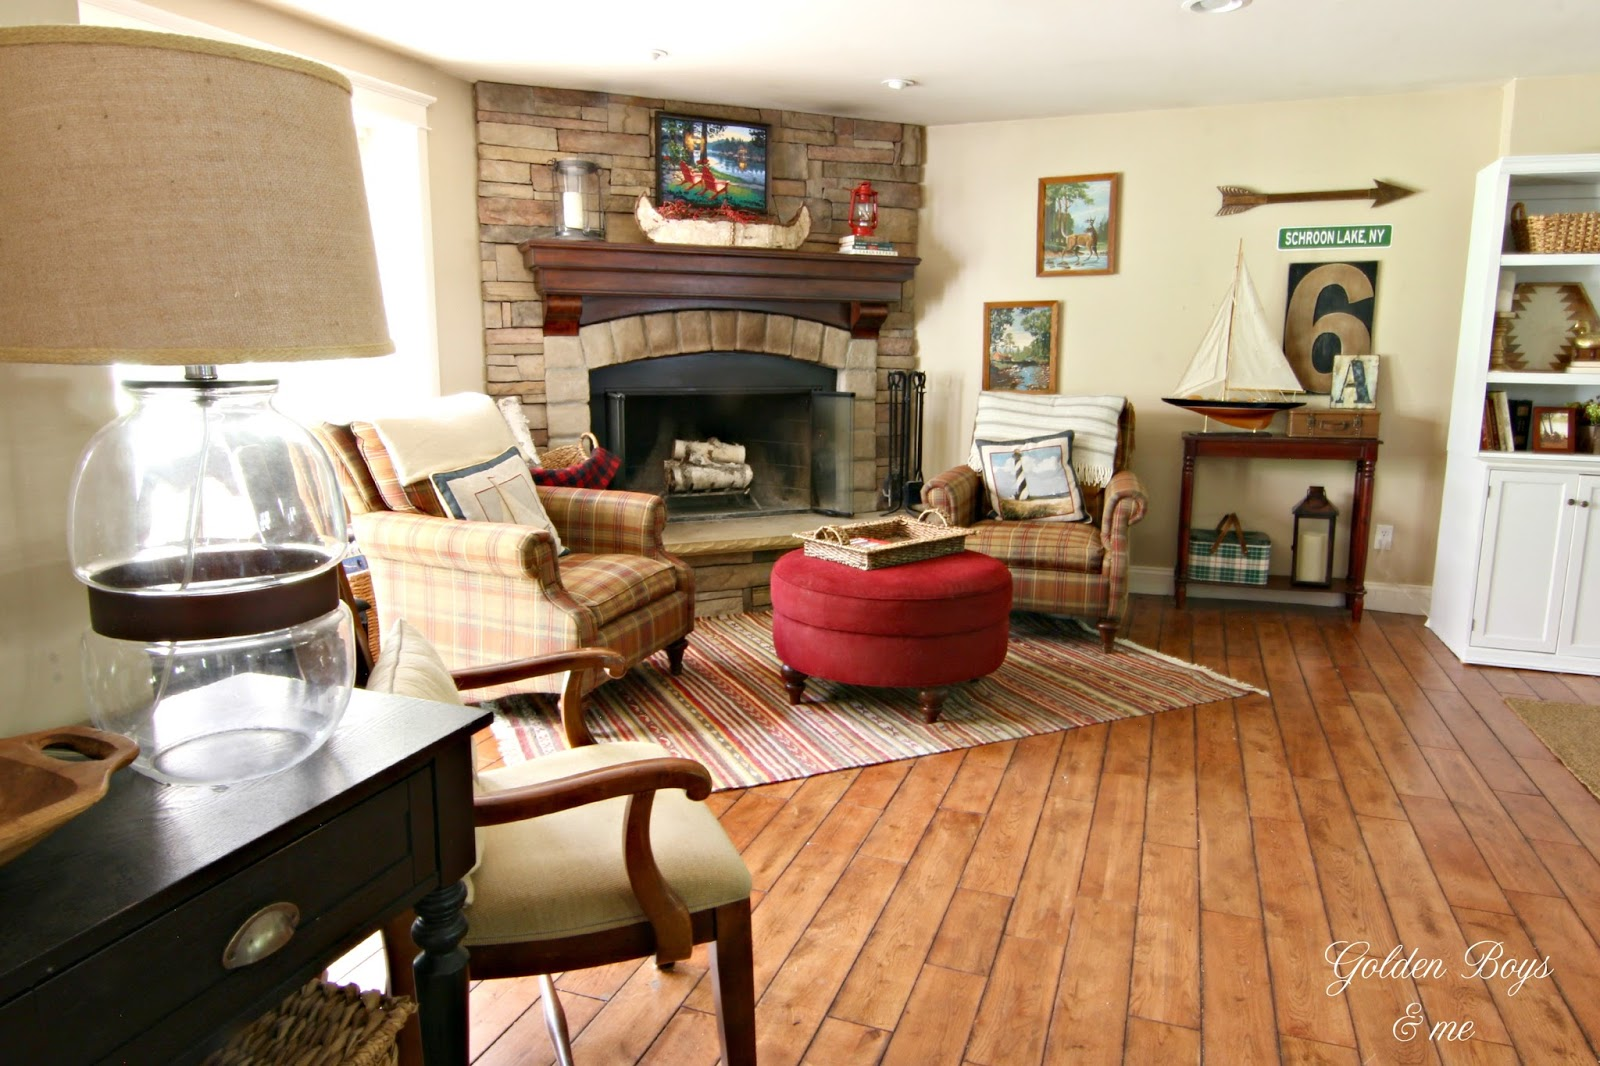 golden boys and me summer changes in our family room corner stone fireplace in family room www goldenboysandme com